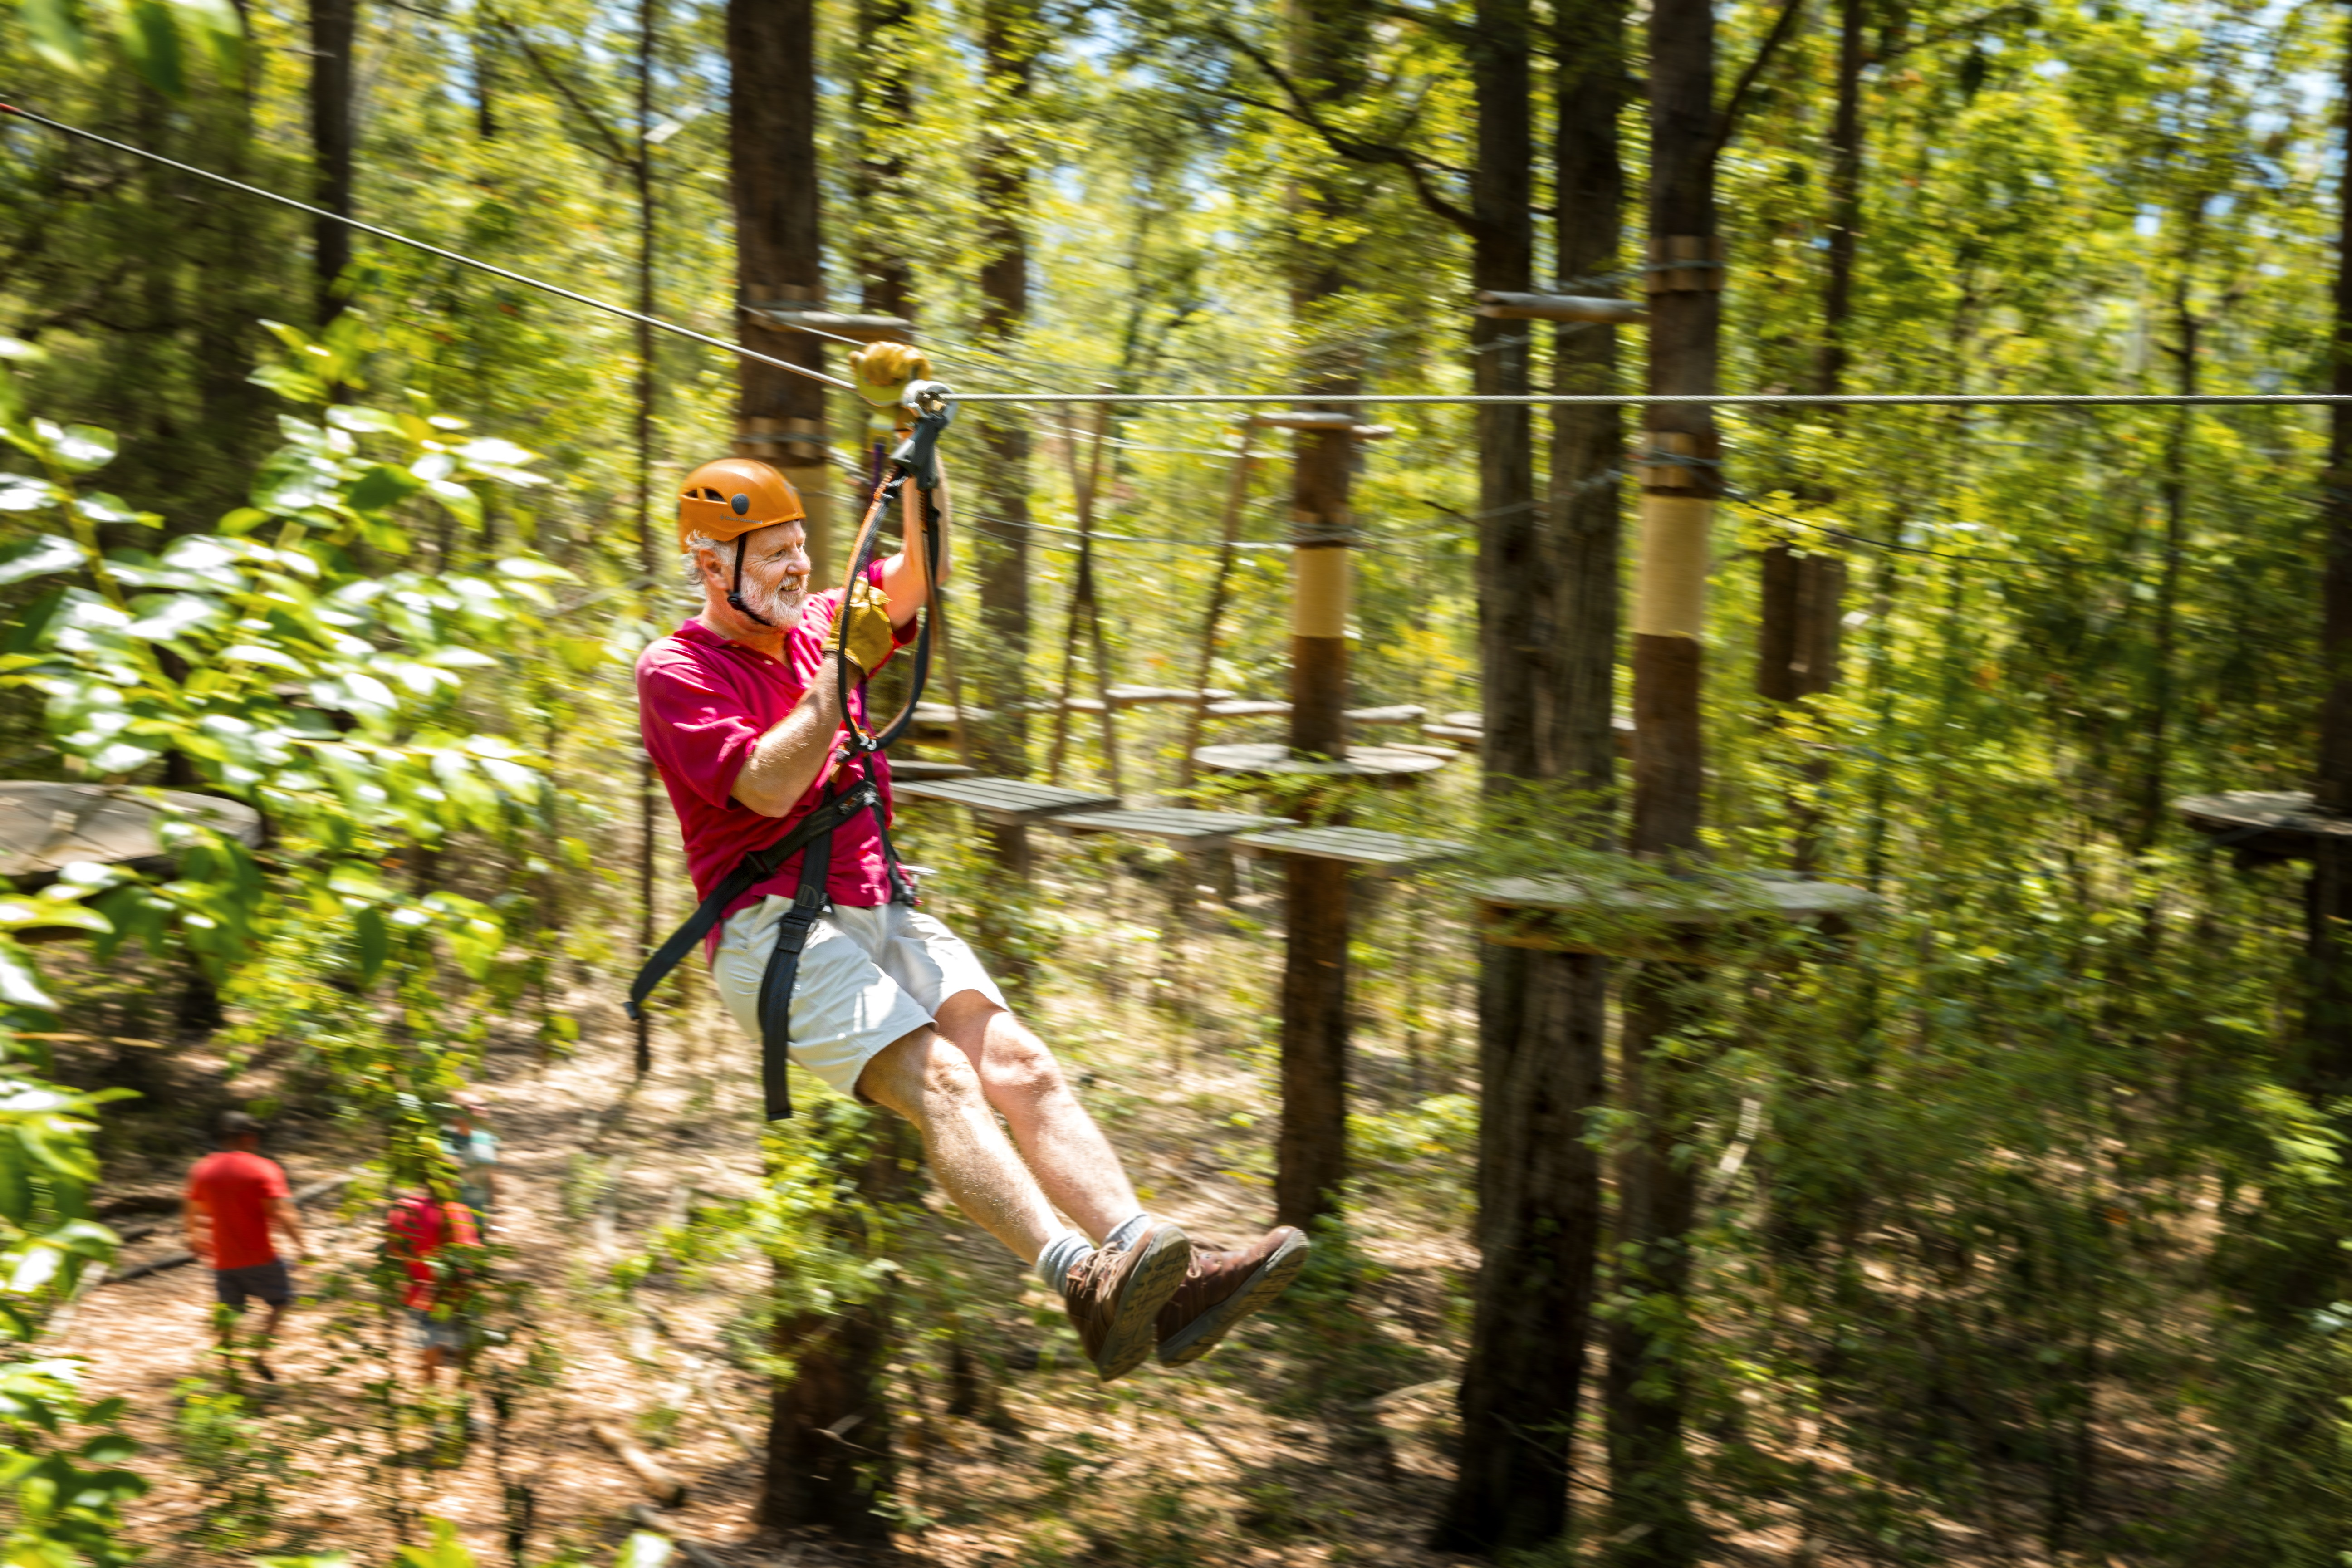 man with incontinence zip-lining in forest